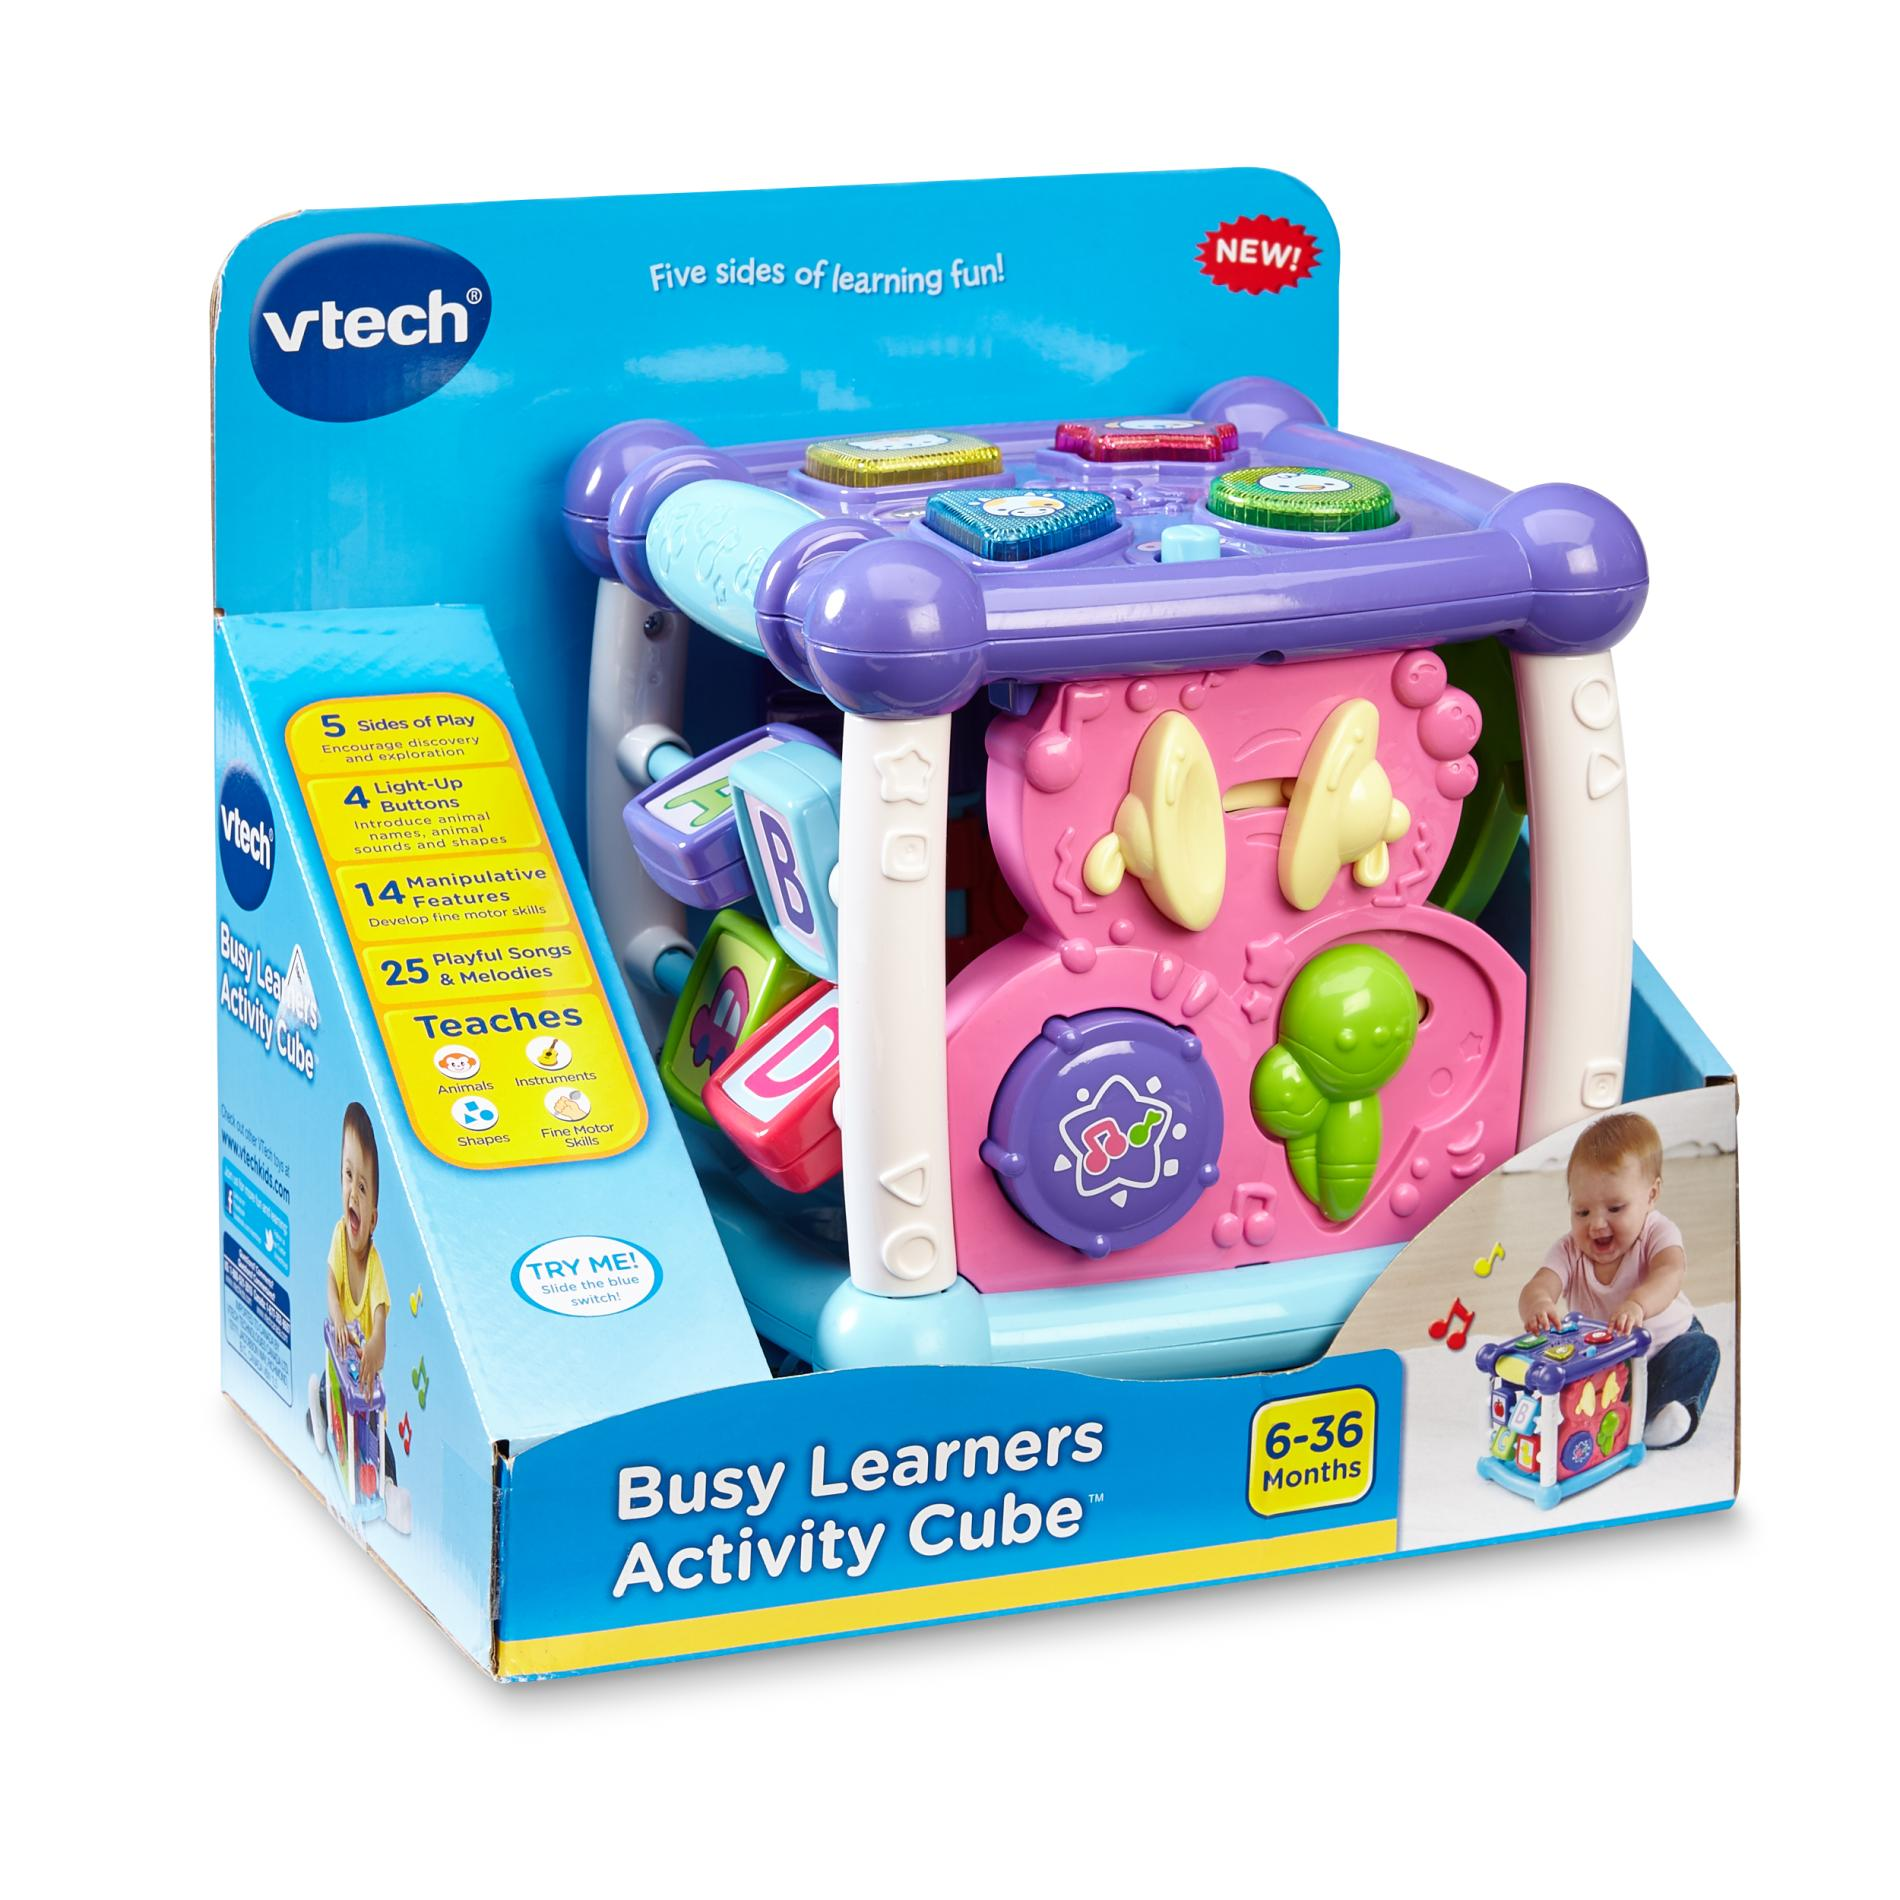 Vtech Infants Busy Learners Activity Cube